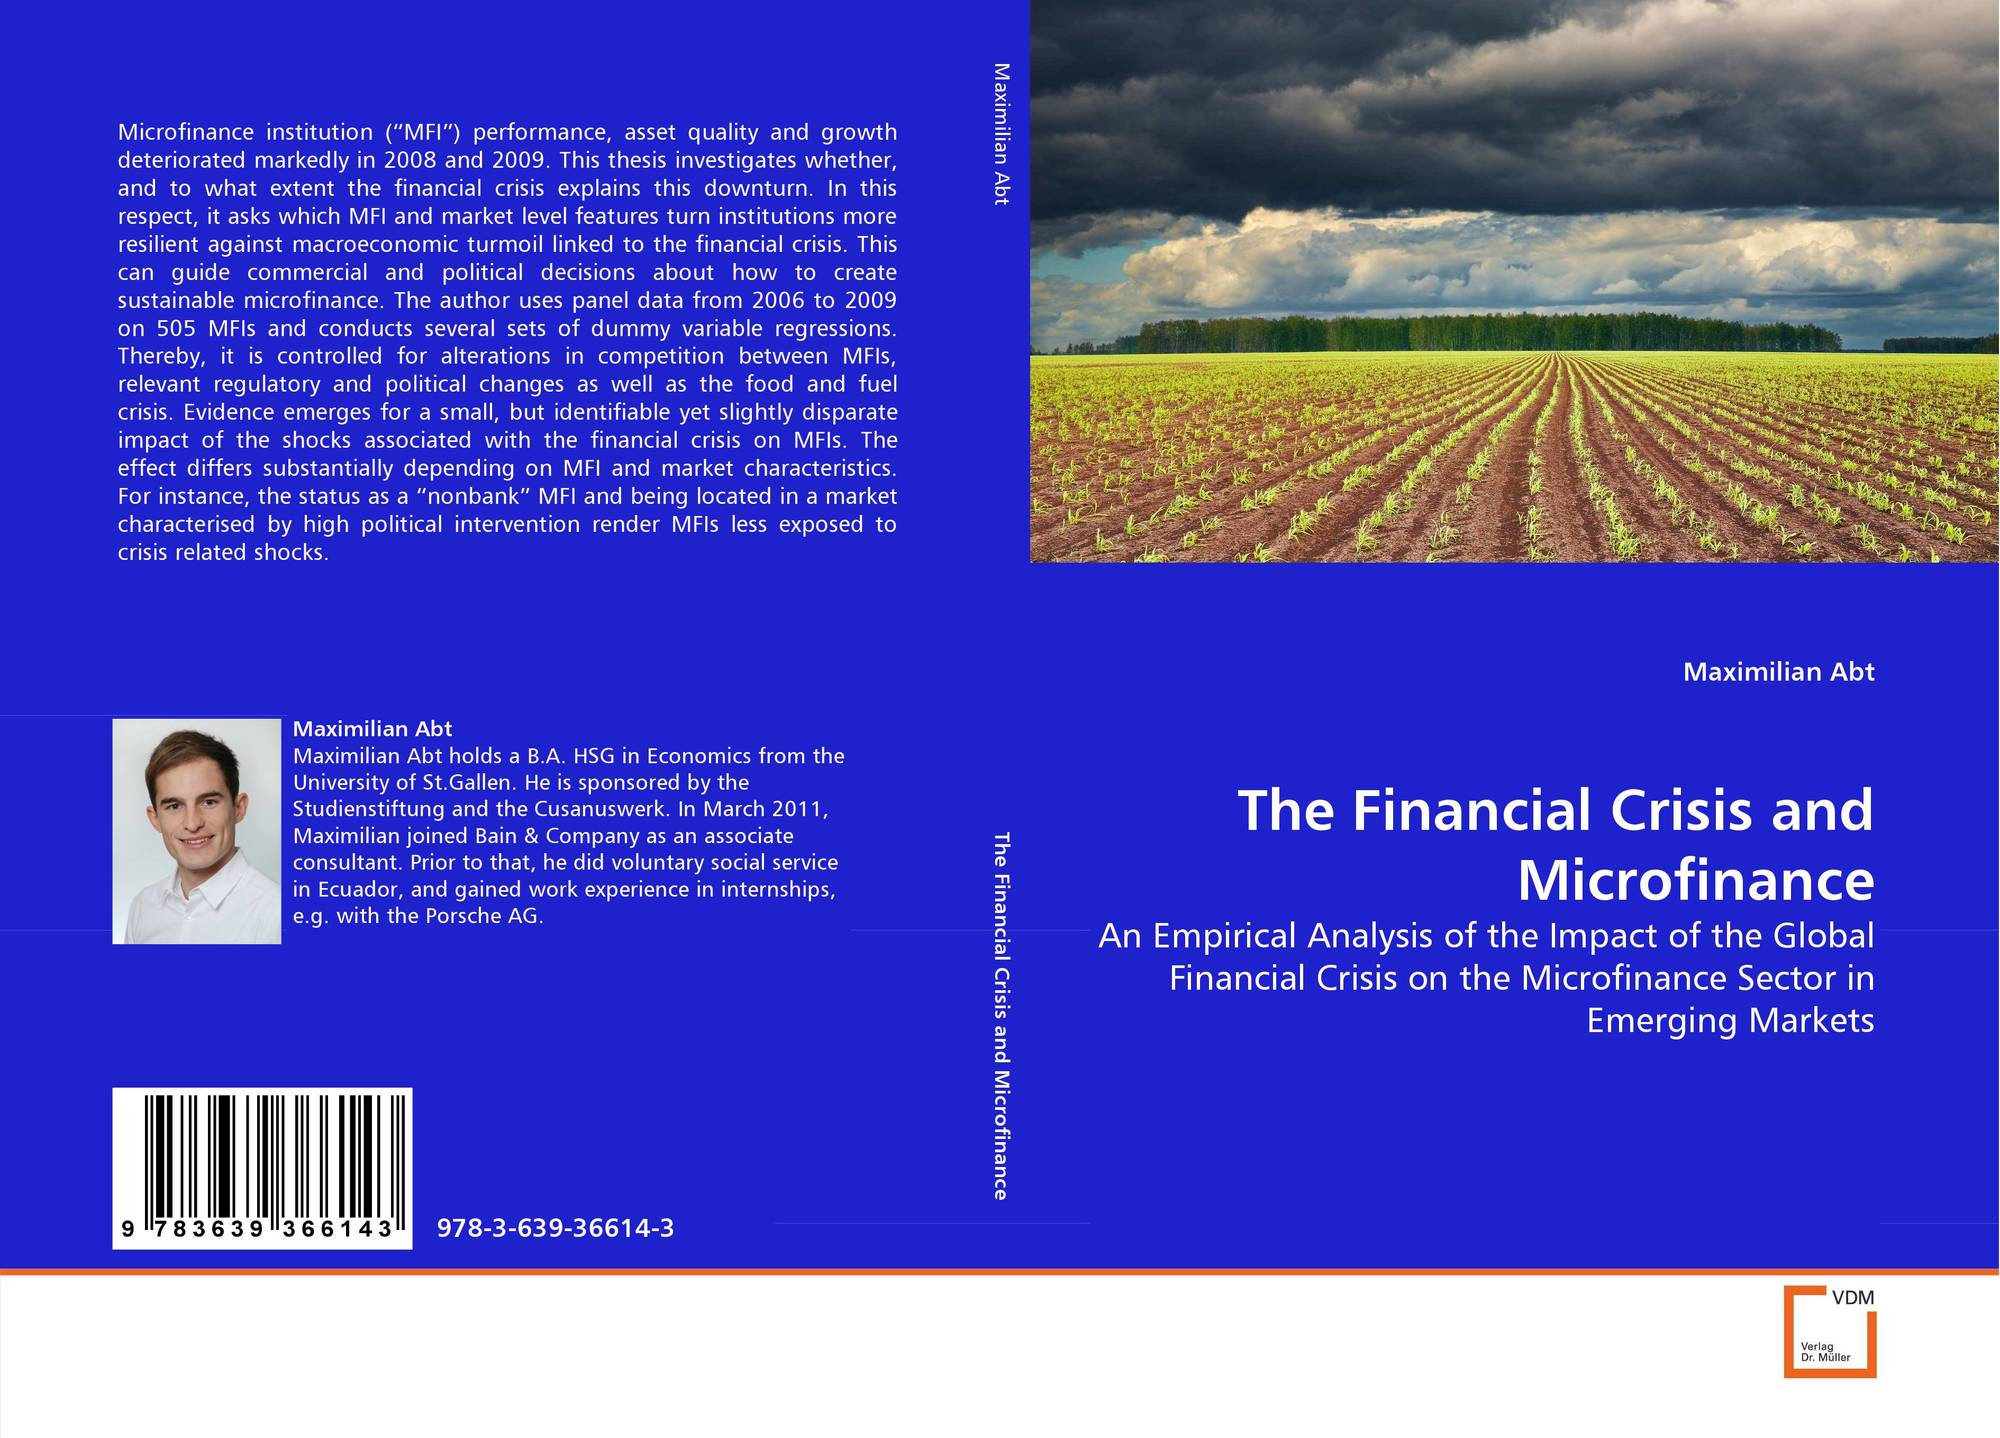 the global financial crisis impact The impact of global financial crisis on the united kingdom introduction this report will examine the affects of the global financial crisis, which was a result of the collapse of the sub-prime mortgage market in the united states, on the uk economy.